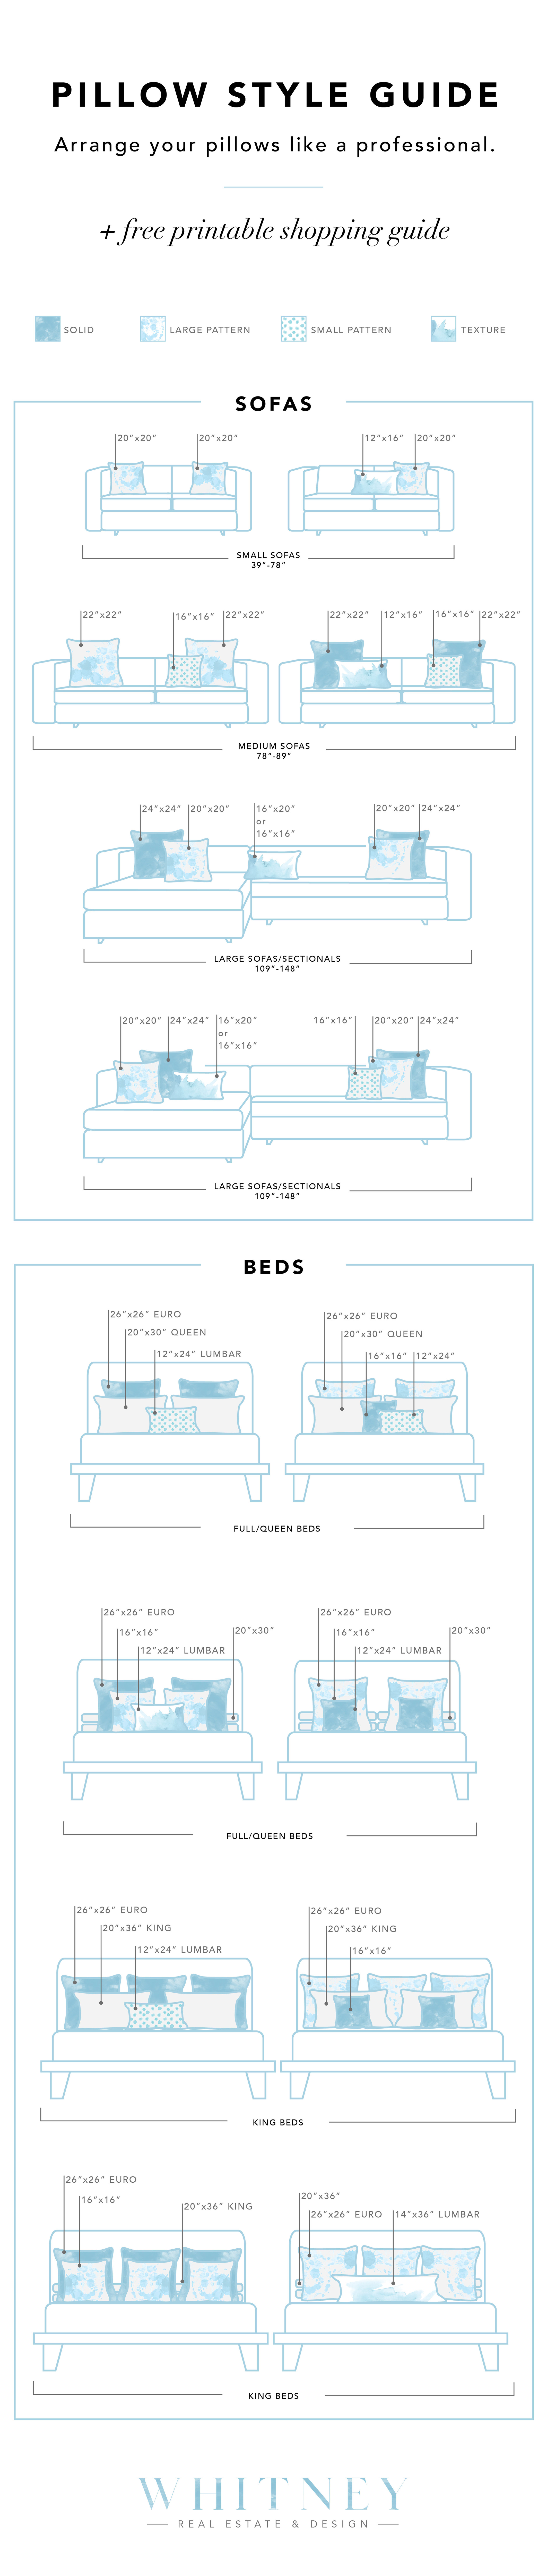 WH_Blog_Pillow-Style-Guide_Freebie-Long.jpg